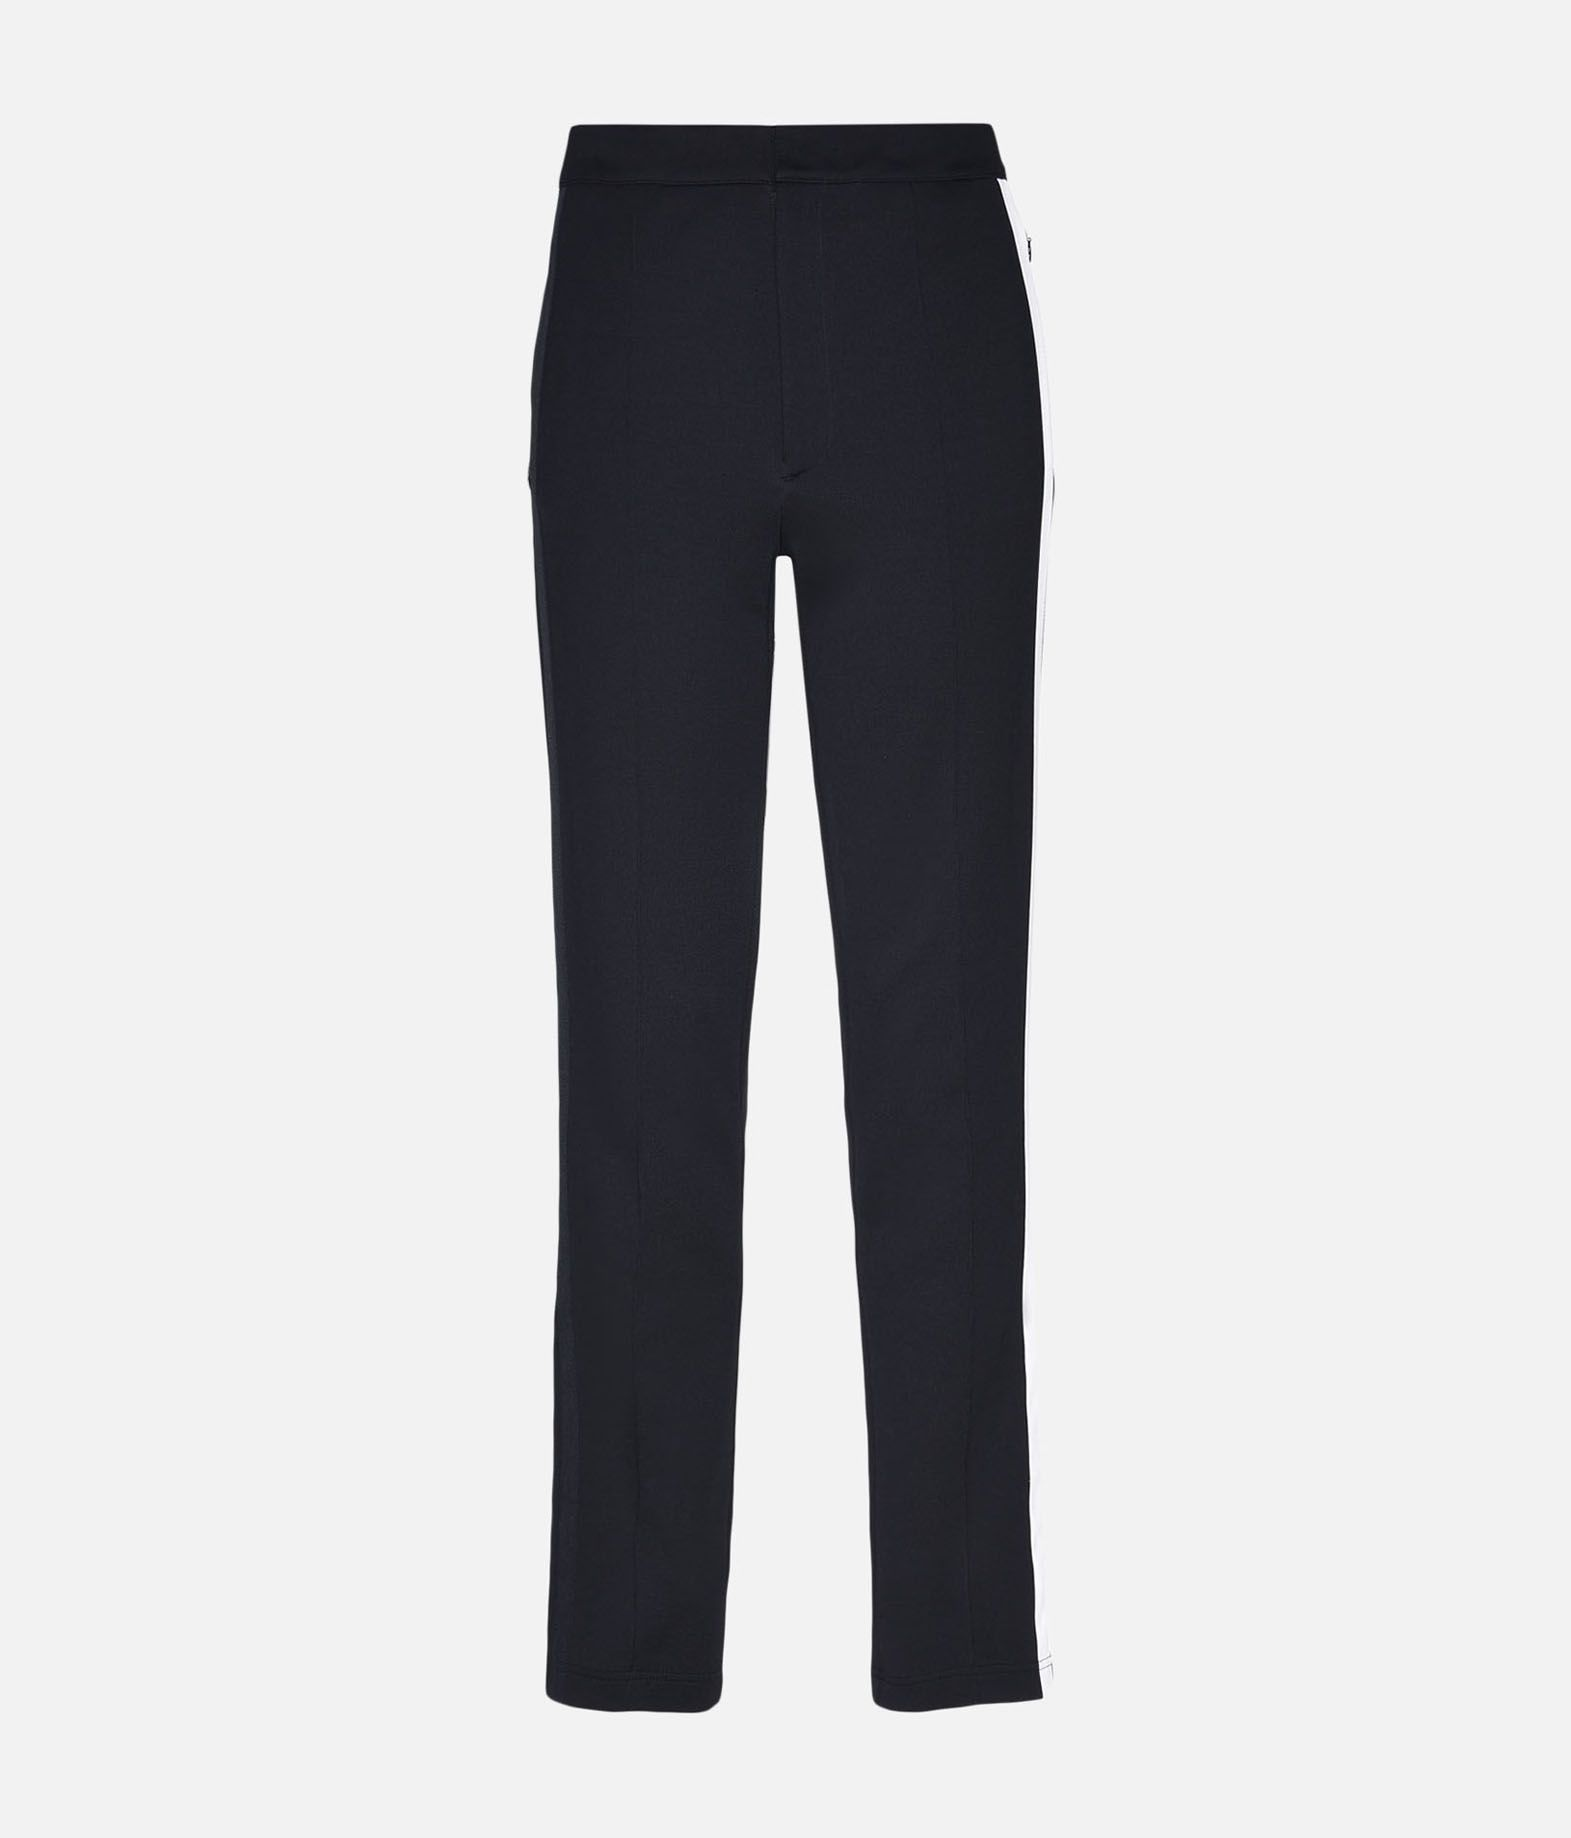 Y-3 Y-3 High Waist Matte Track Pants Casual pants Woman f